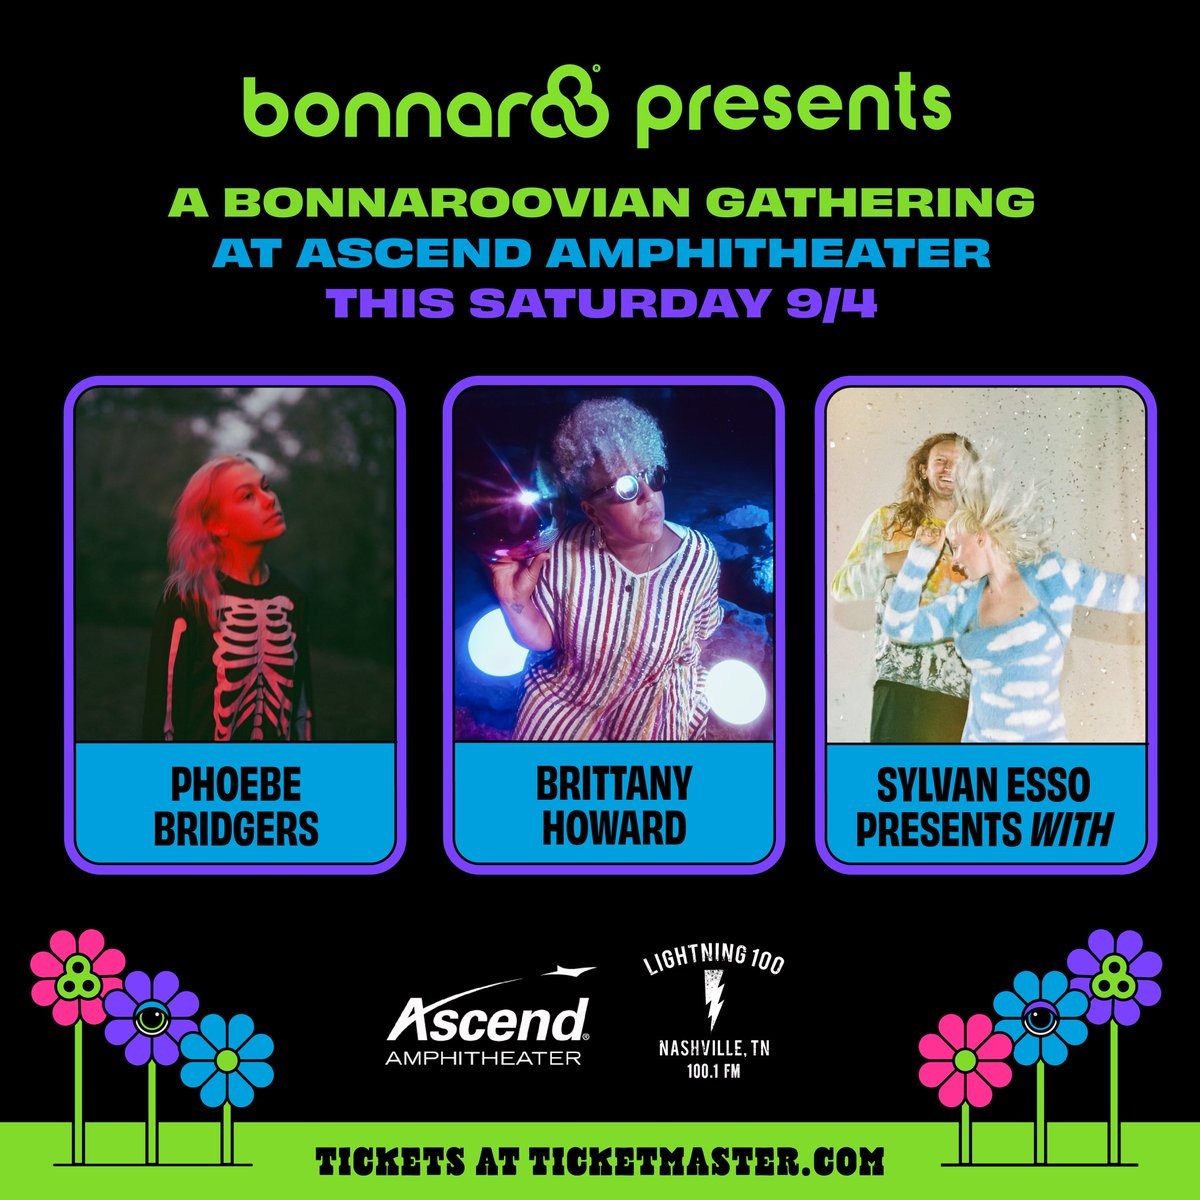 Following Last-Minute Cancellation, Bonnaroo Announces Show With Phoebe Bridgers, Brittany Howard, & Sylvan Esso